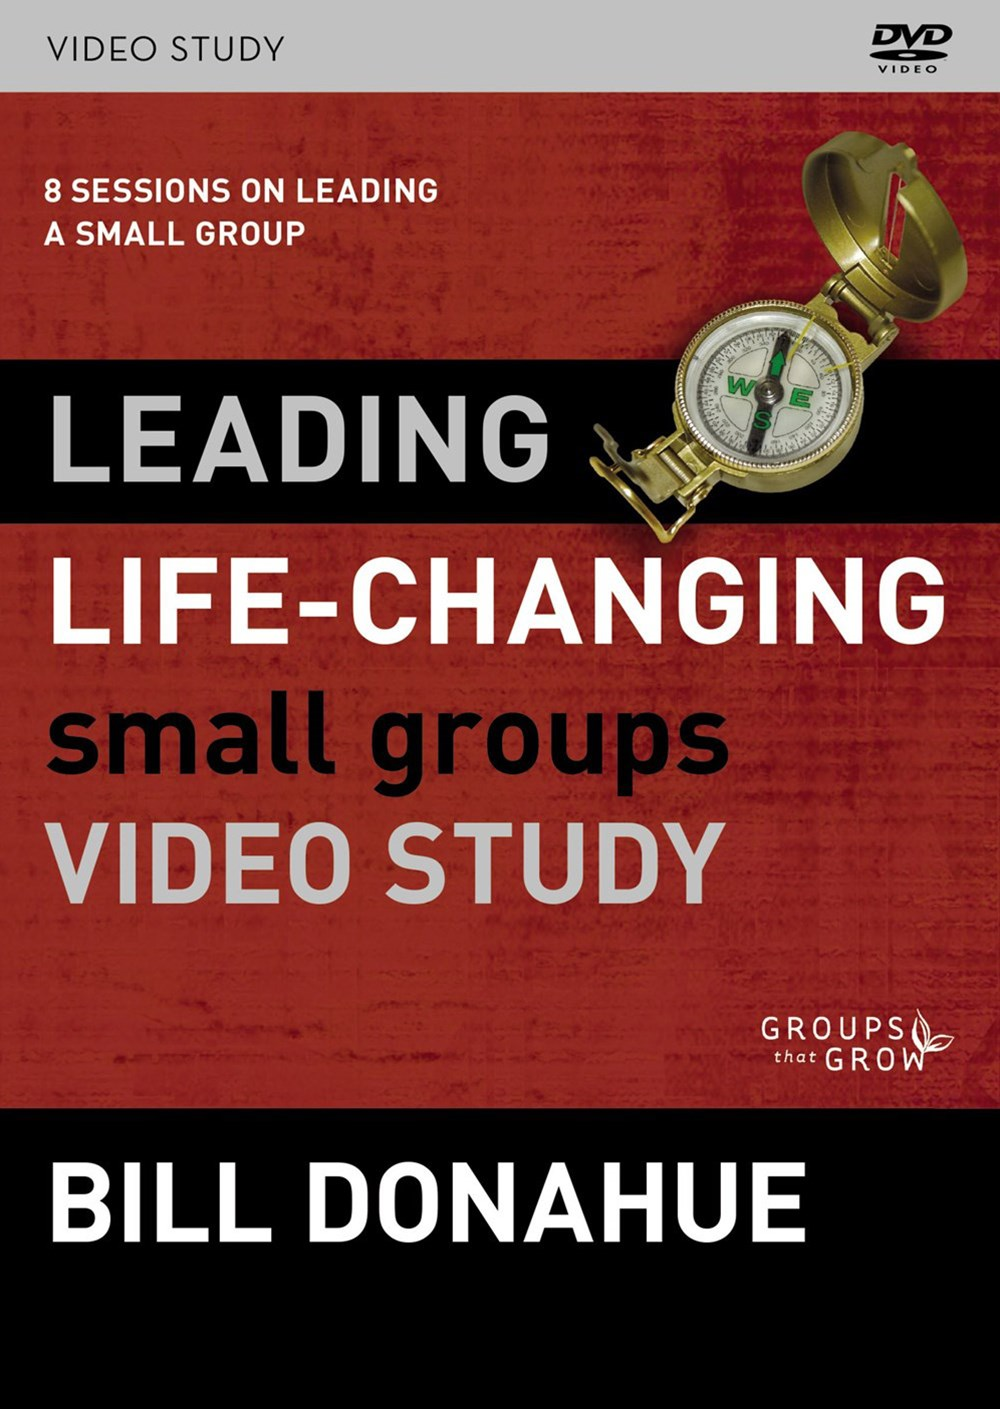 Leading Life-changing Small Groups Video Study